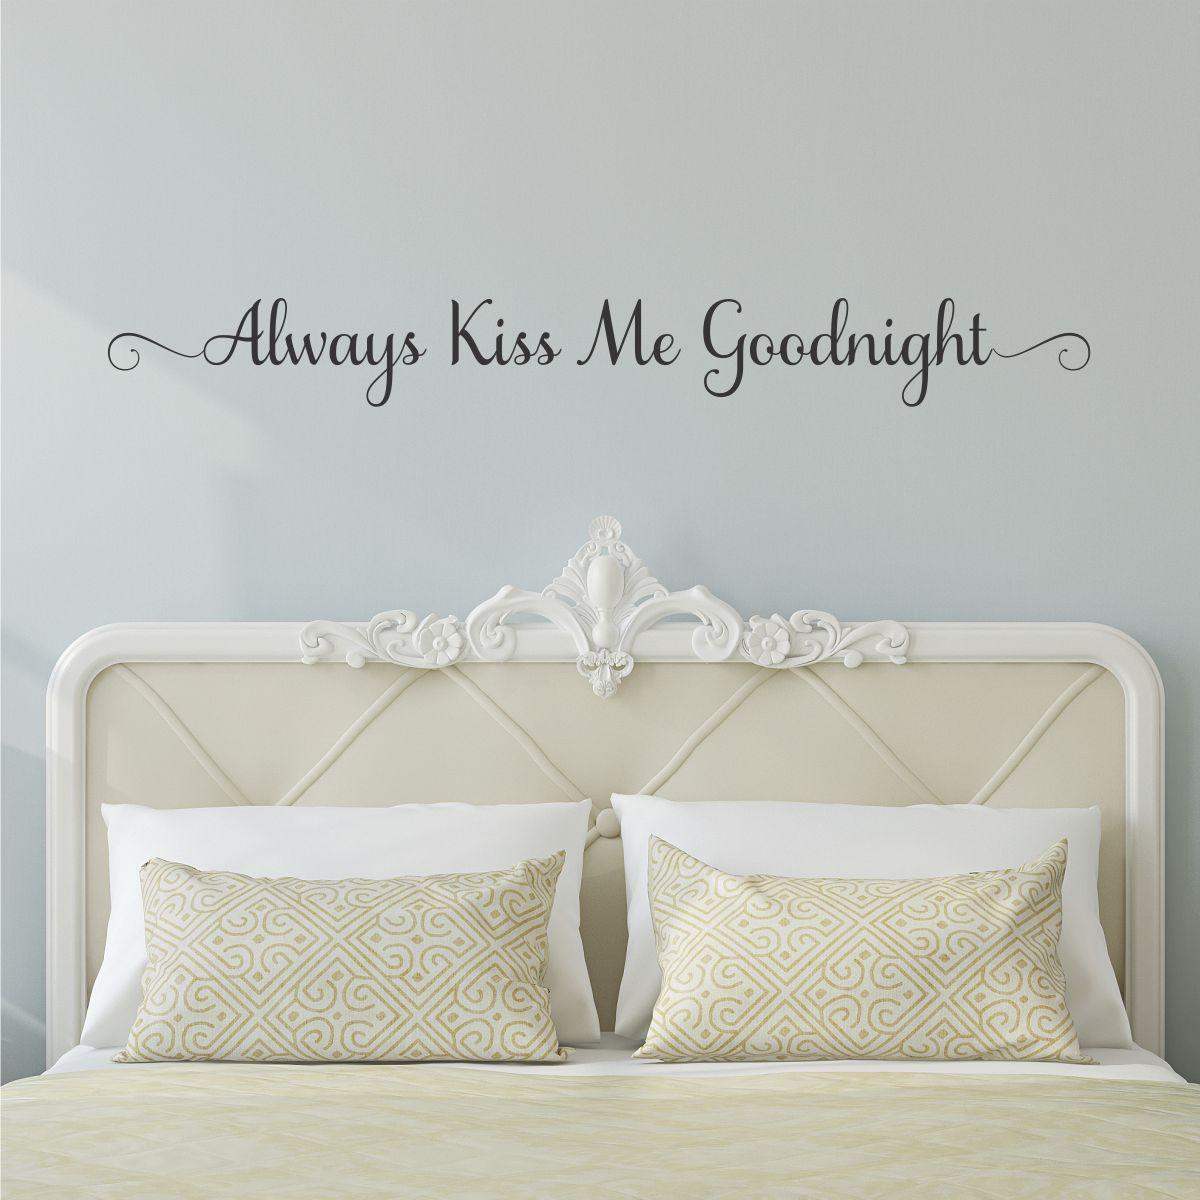 Always Kiss Me Goodnight Samantha Wall Quotes Decal